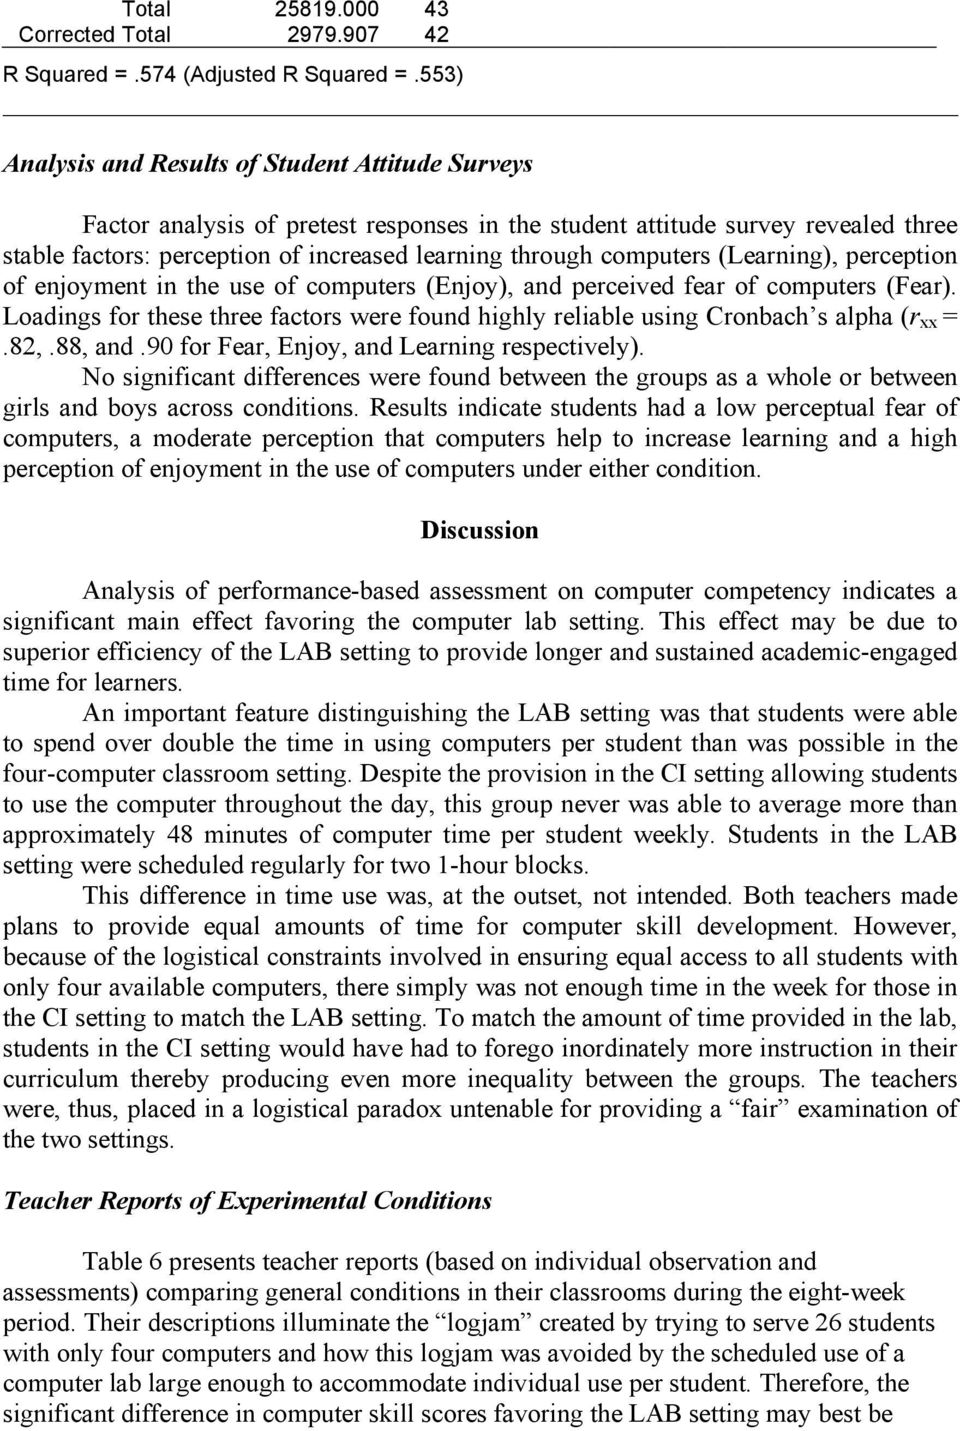 computers (Learning), perception of enjoyment in the use of computers (Enjoy), and perceived fear of computers (Fear).